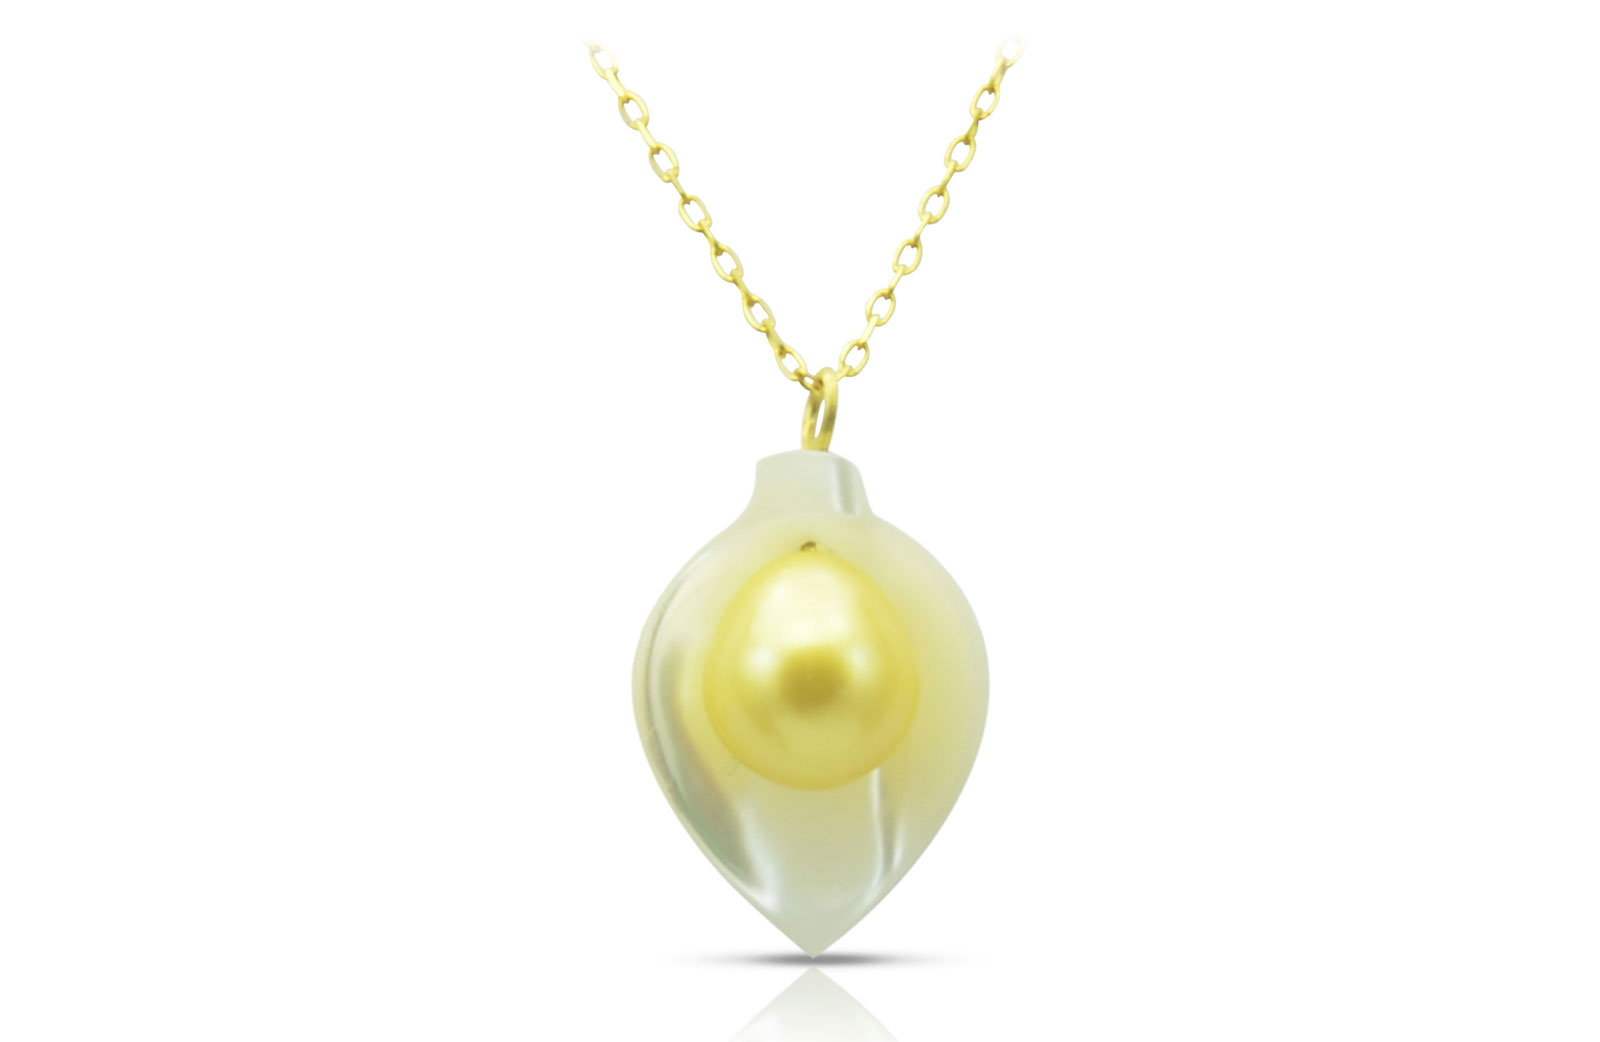 Vera Perla 18K Gold Calla Lily Mother of Pearl with 7mm Golden Pearl Necklace